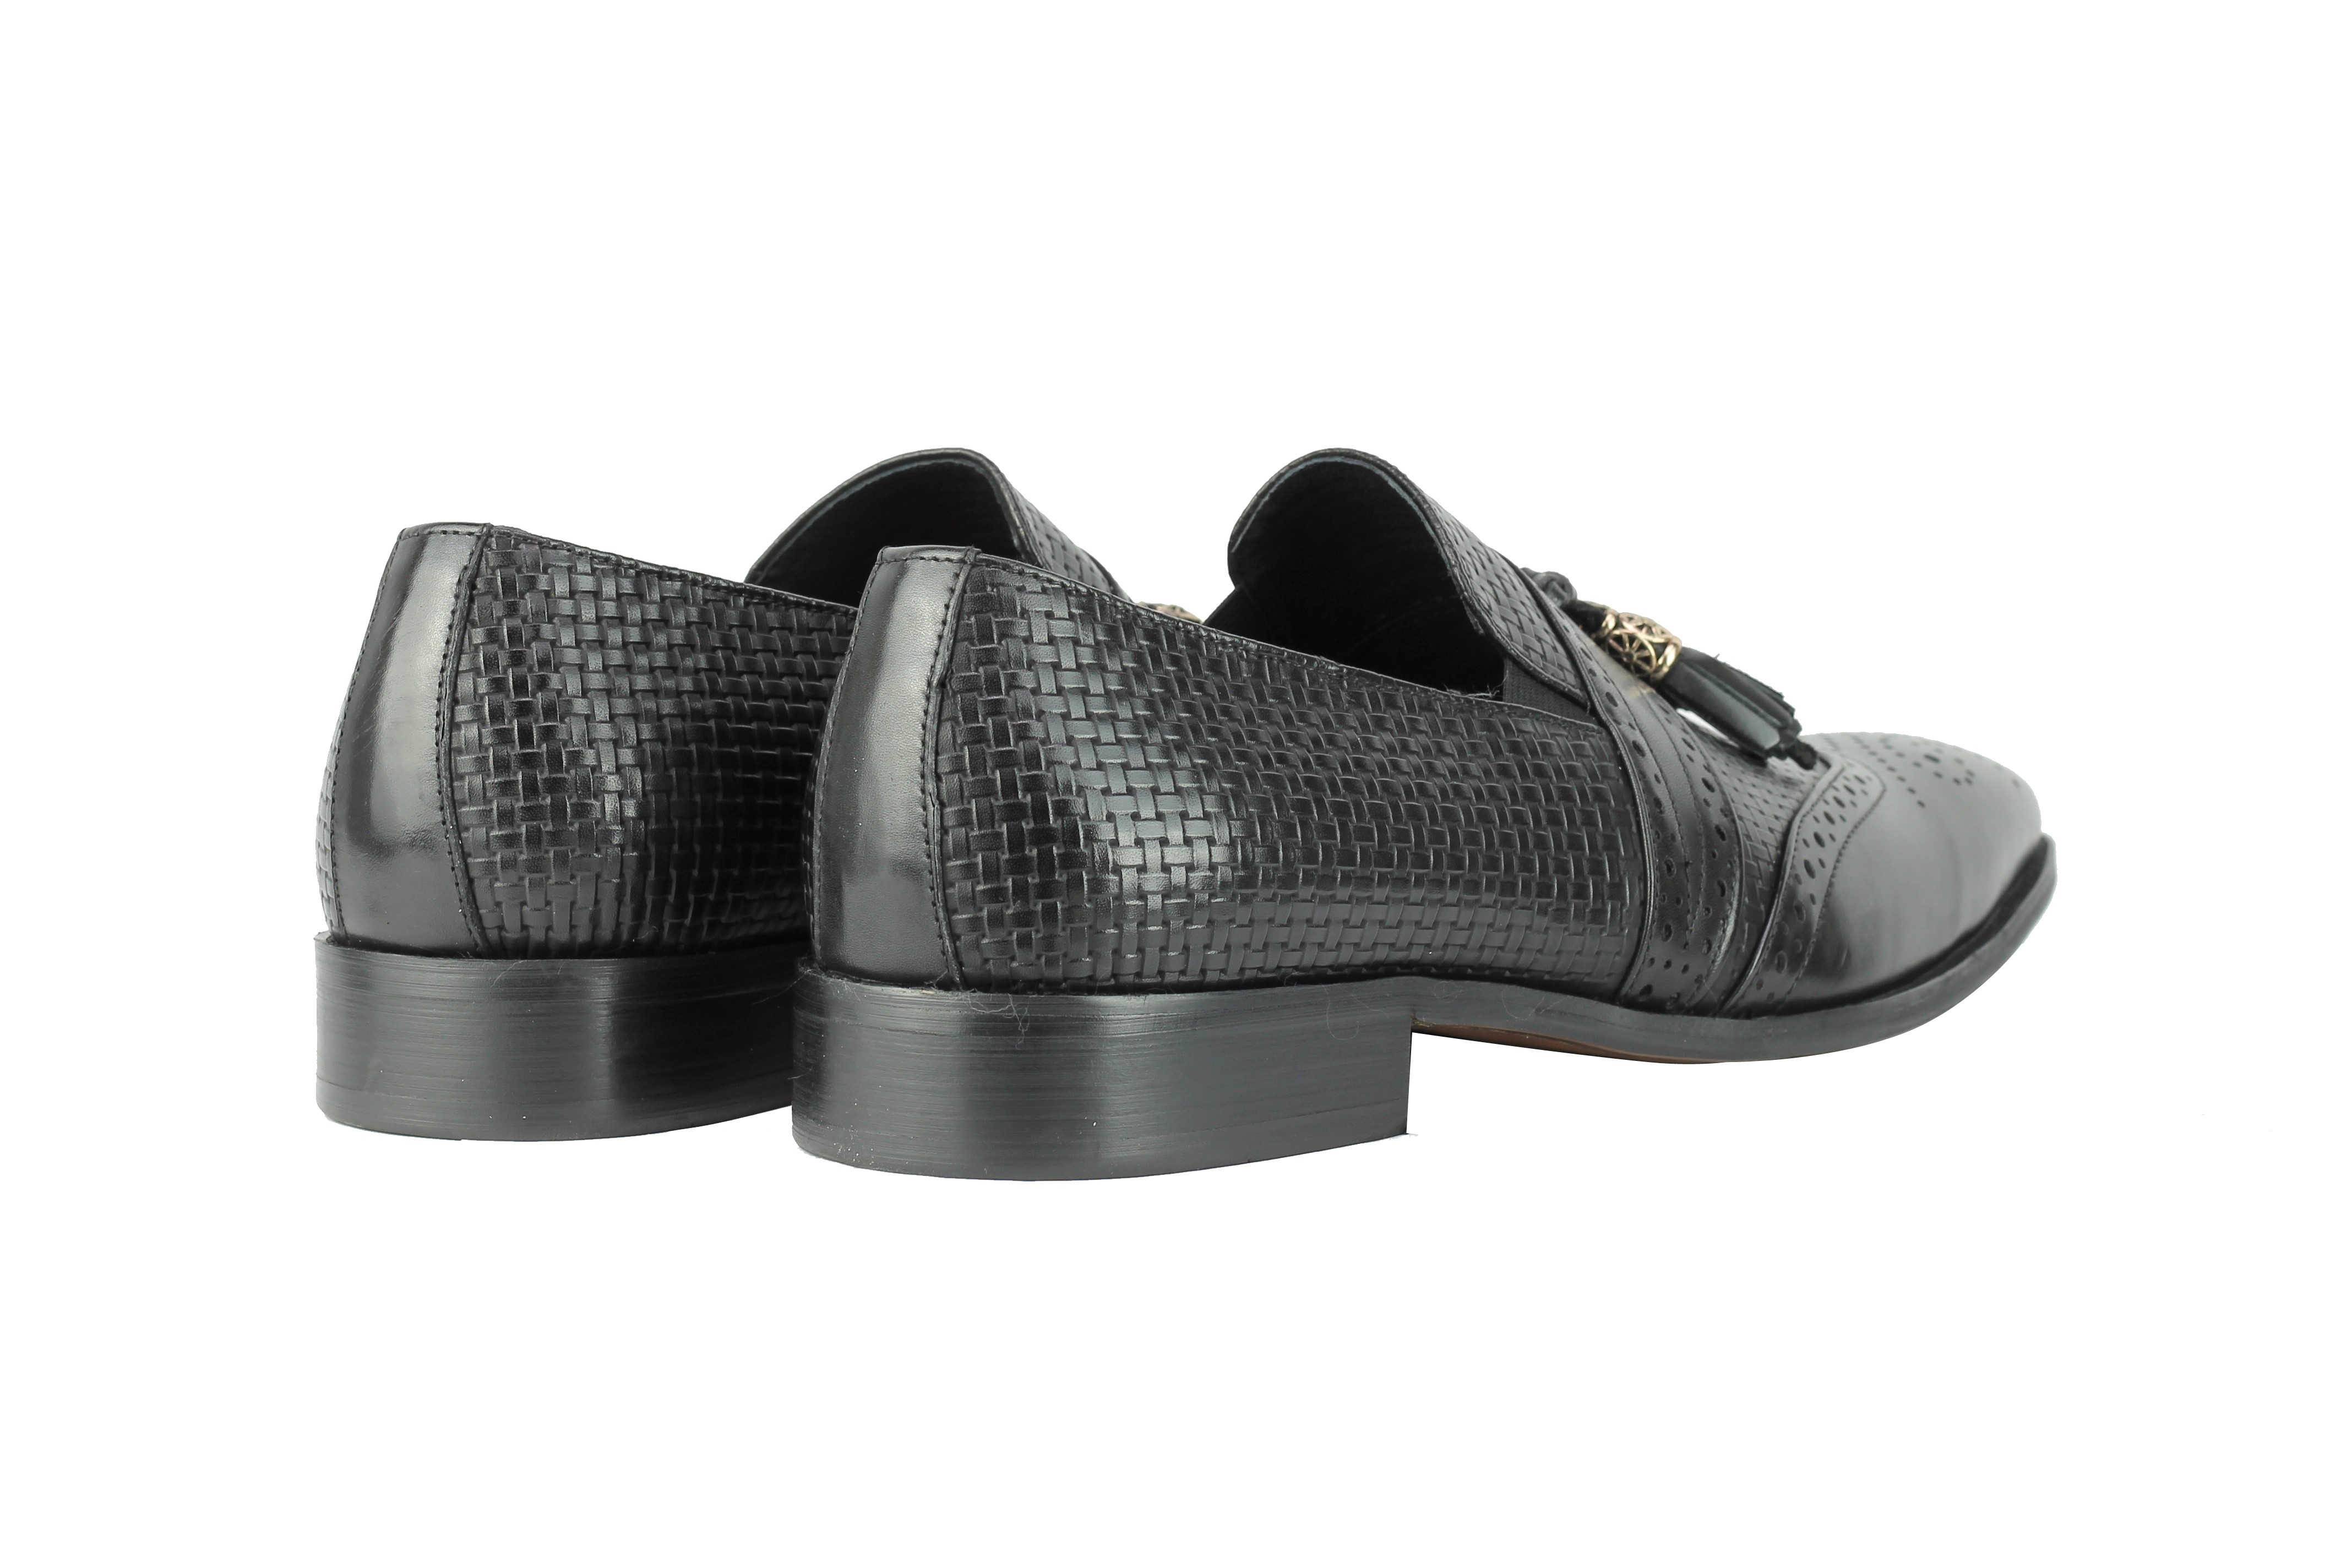 Mens-Real-Leather-Slip-on-Tassel-Loafers-High-Detailed-Smart-Dress-Party-Shoes thumbnail 6